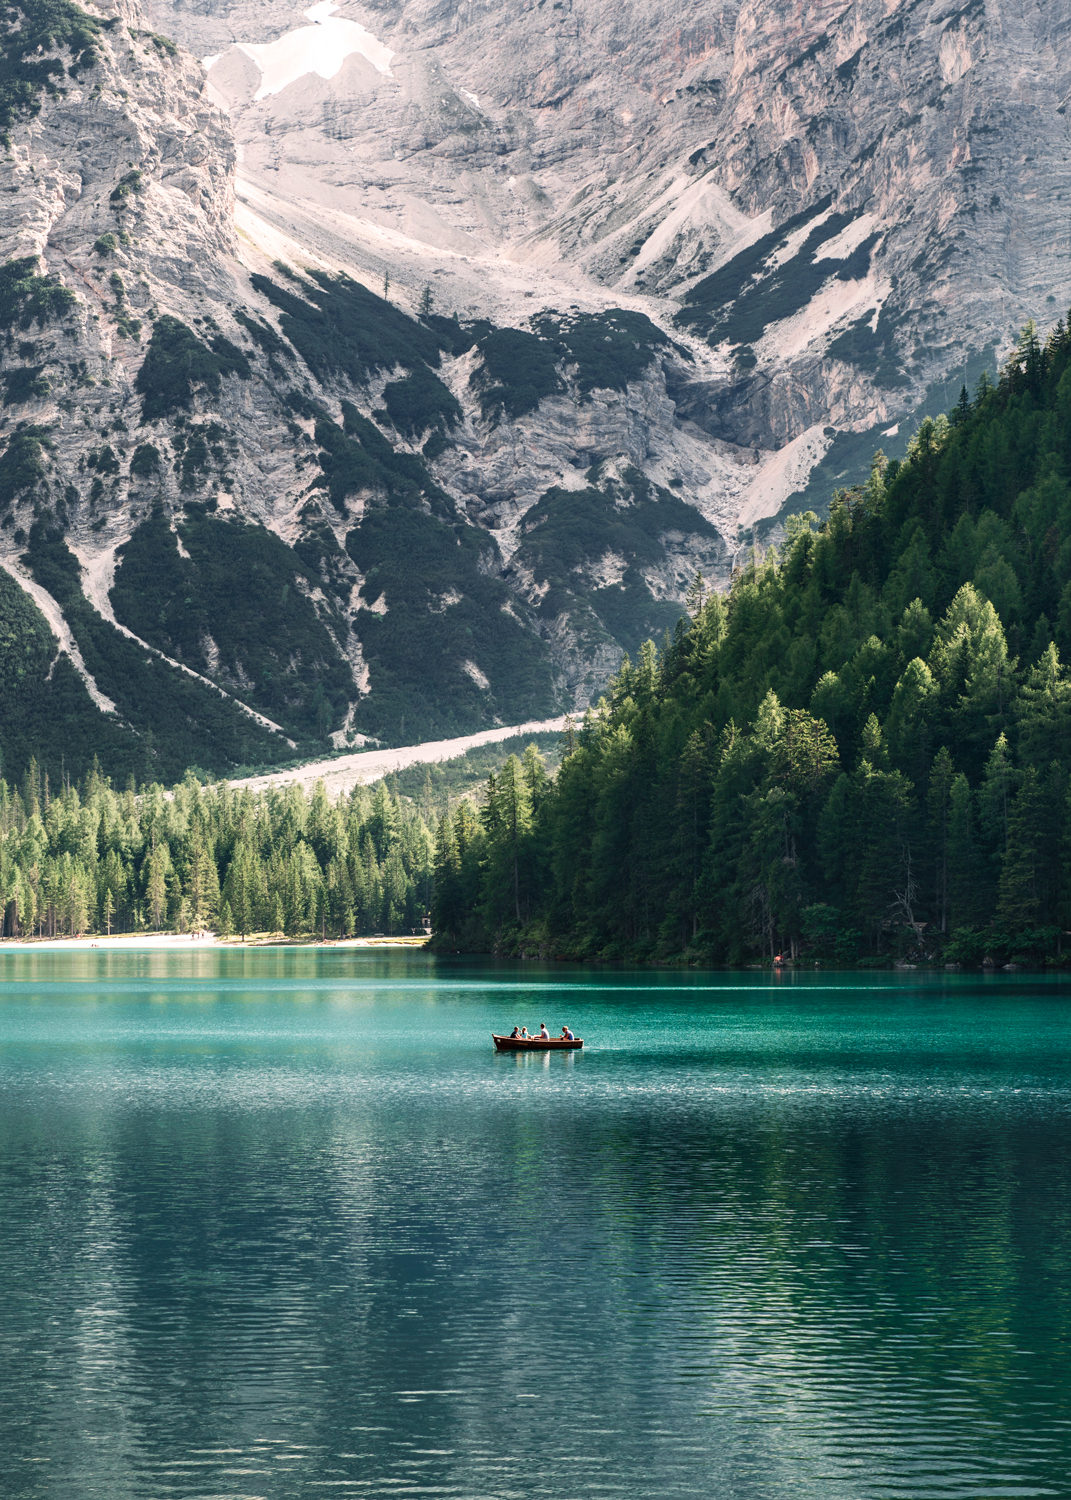 summer row boat on Pragser Wildsee in Italy. Kirsty Owen photography